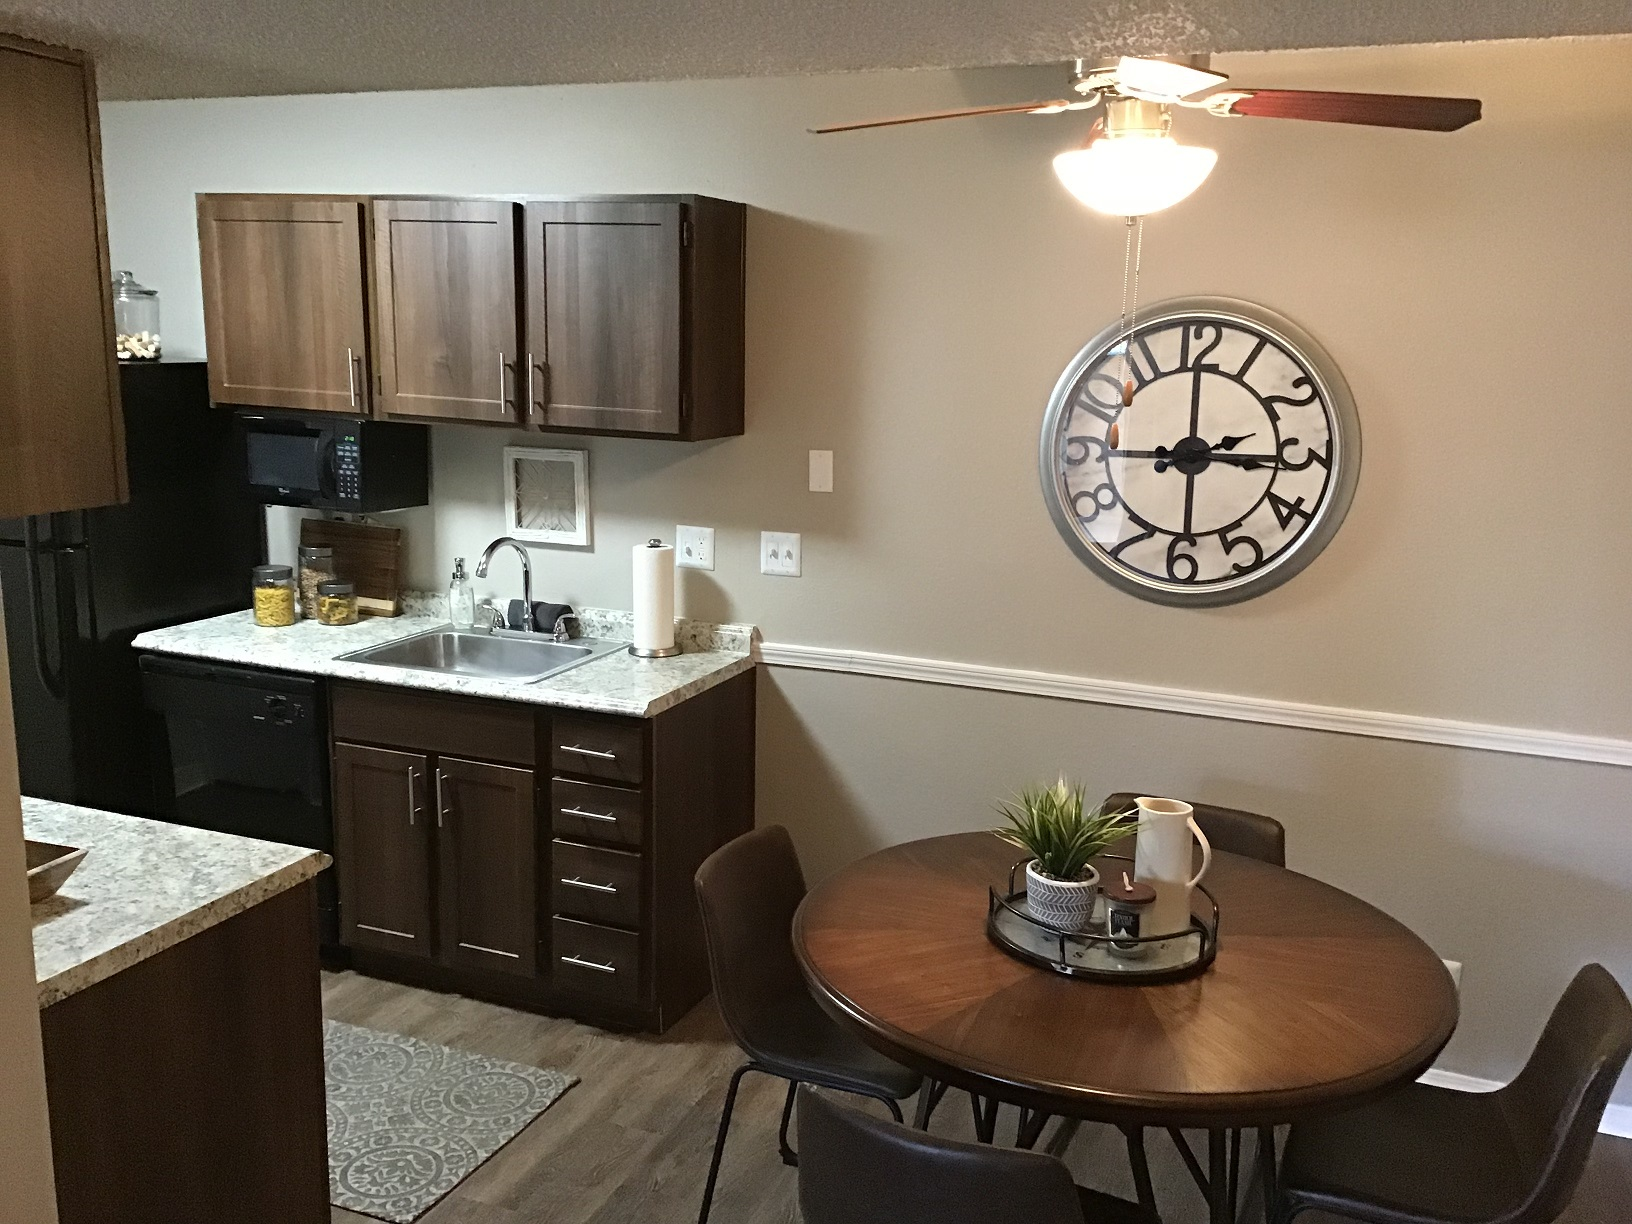 Wood Style Furniture at Rustic Woods Apartments in Tulsa, Oklahoma